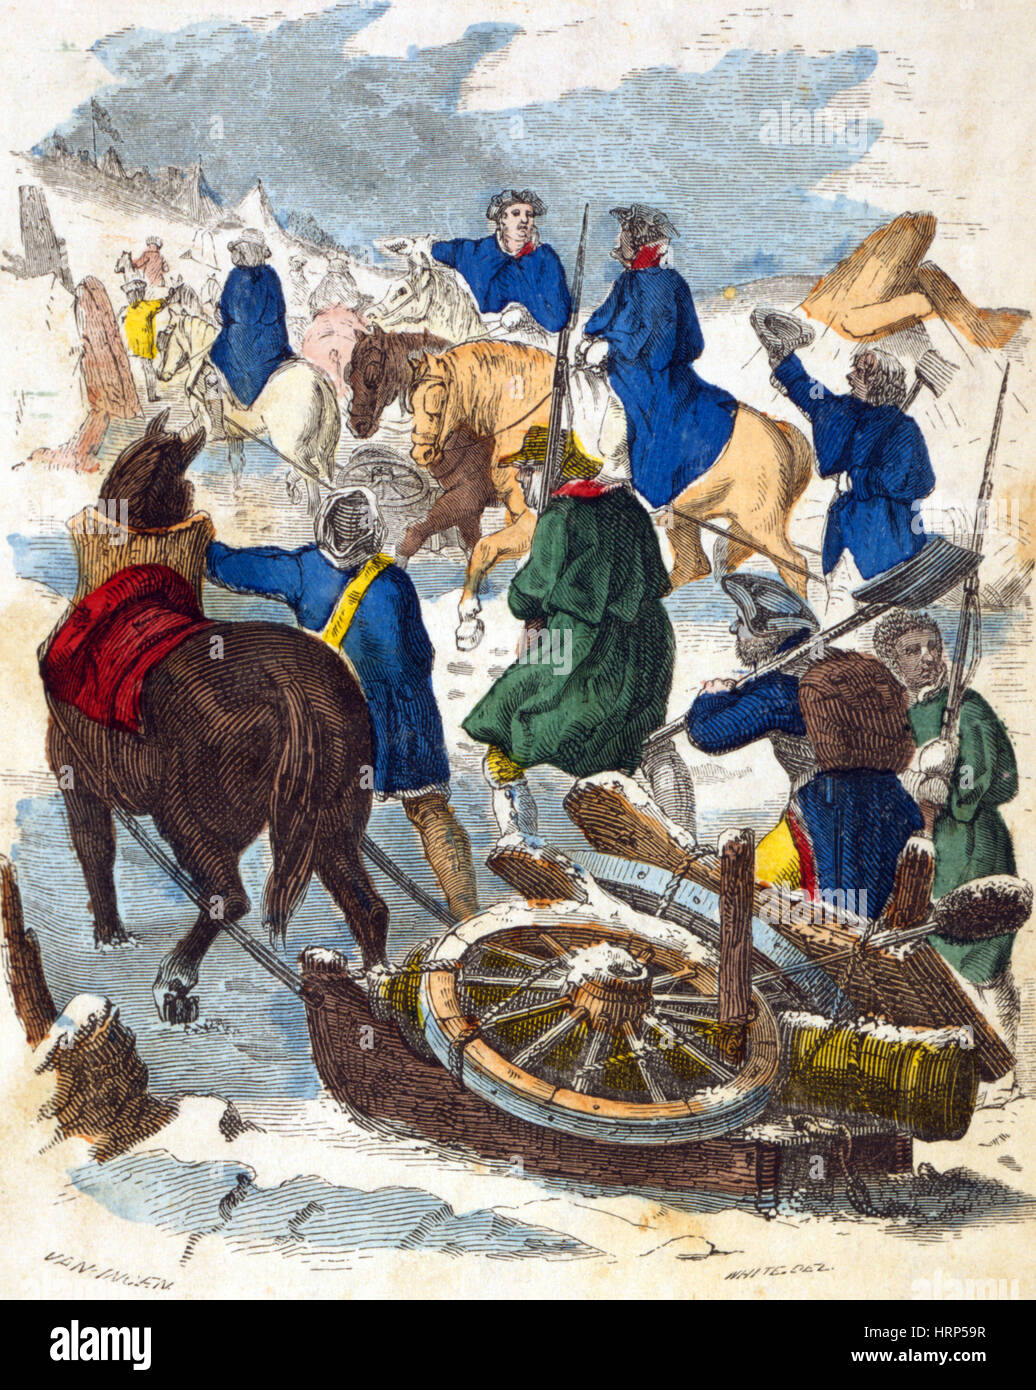 Knox Expedition, Noble Train of Artillery, 1775 - Stock Image